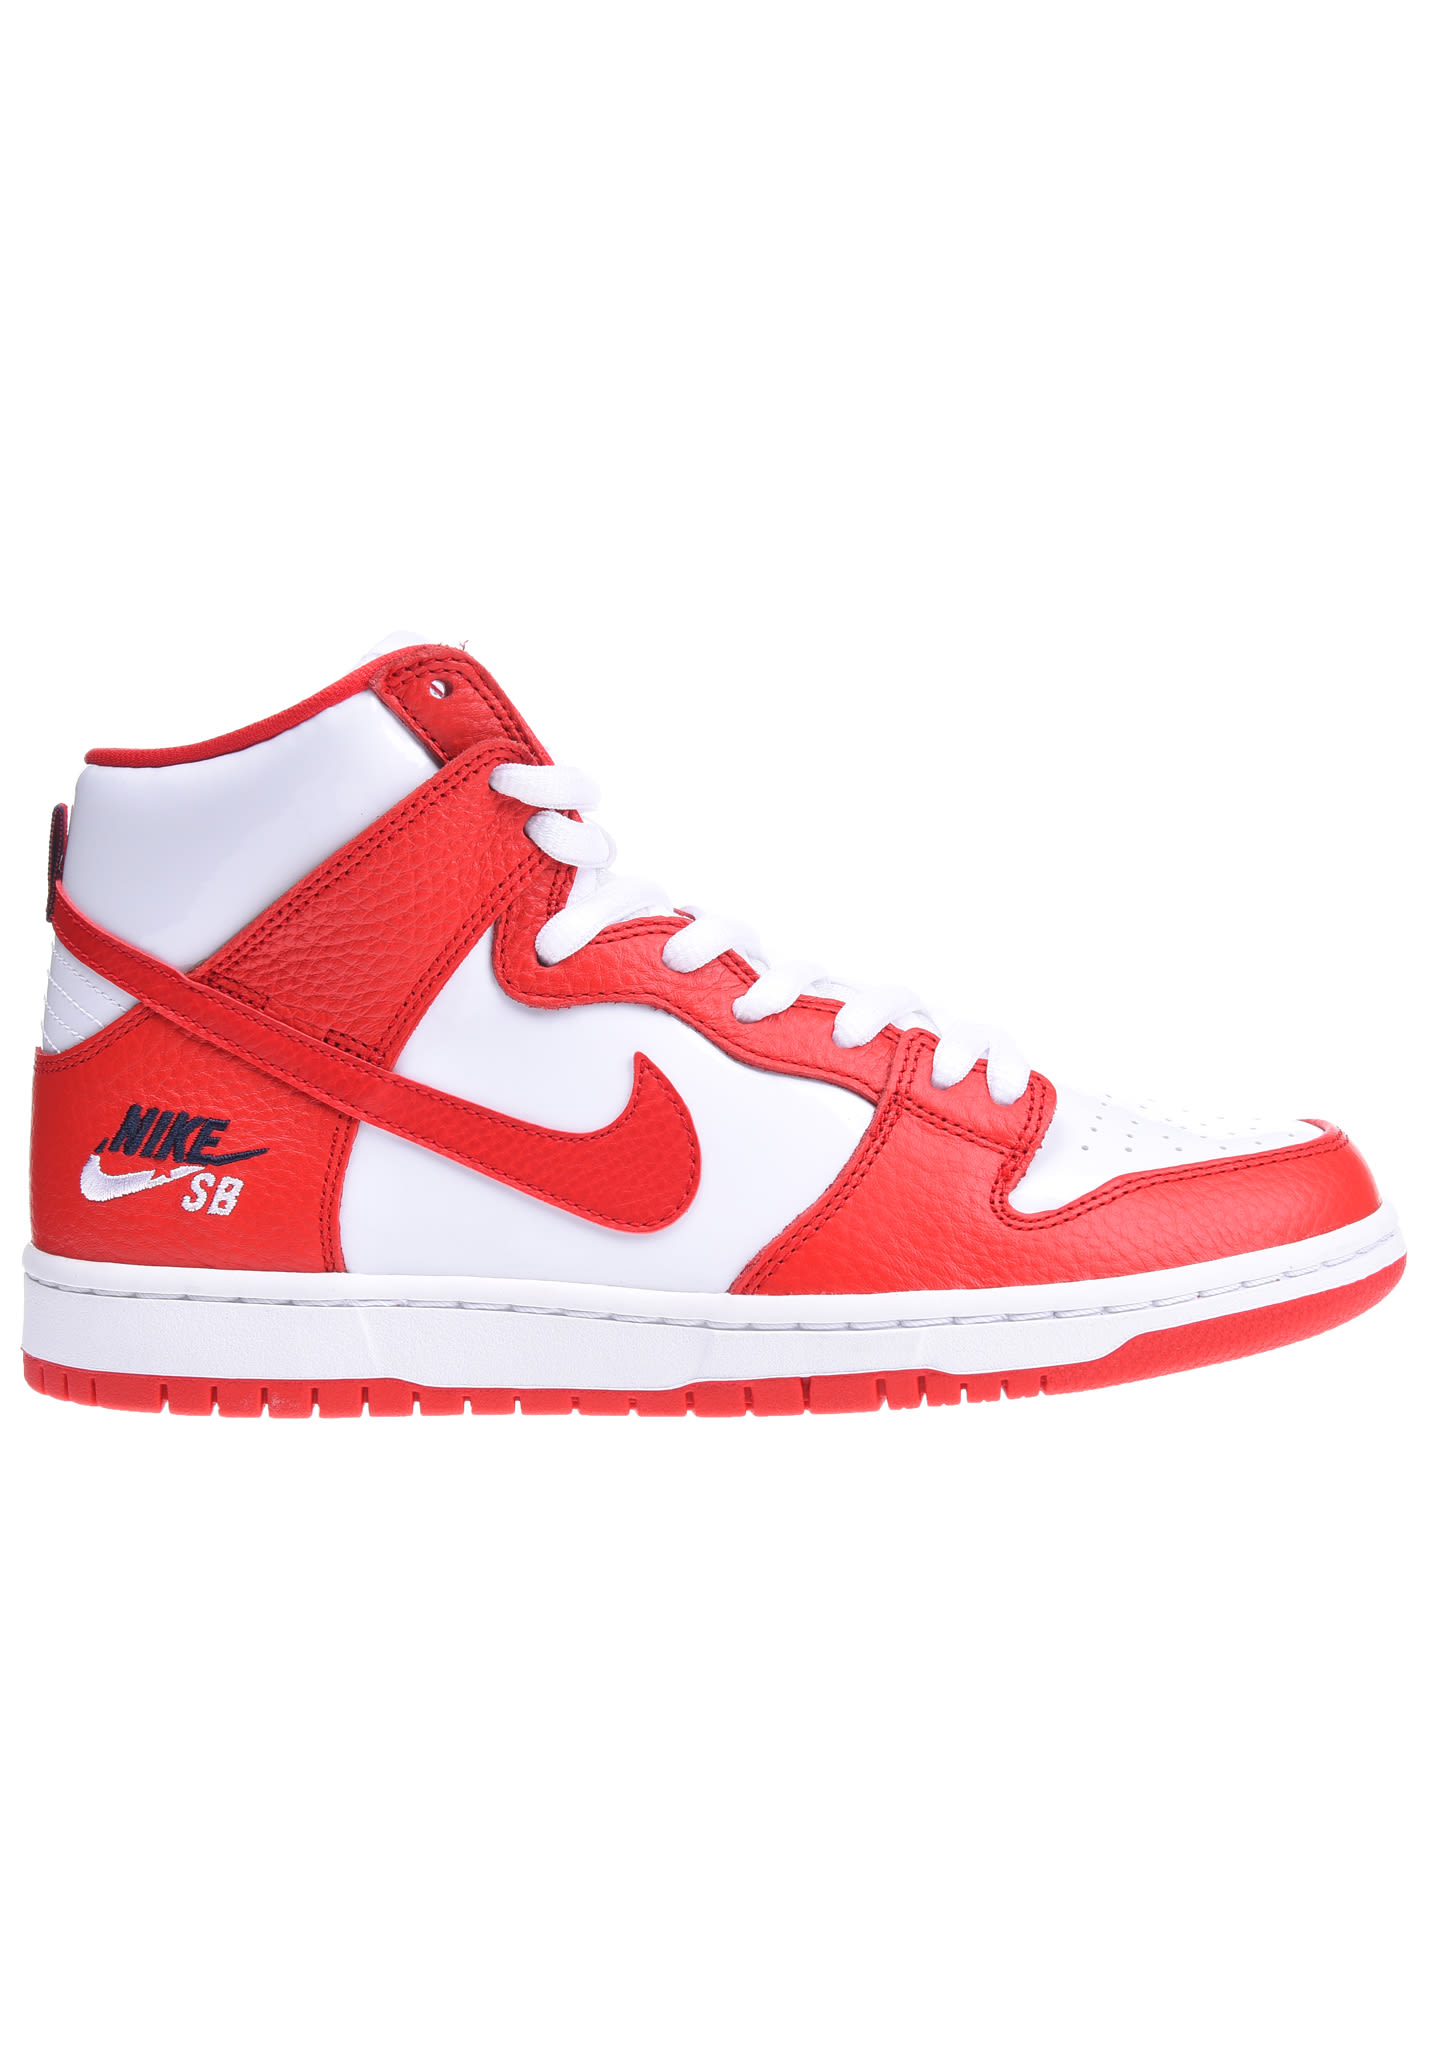 buy online 55e27 2fa2d NIKE SB Zoom Dunk High Pro - Zapatillas para Hombres - Rojo - Planet Sports